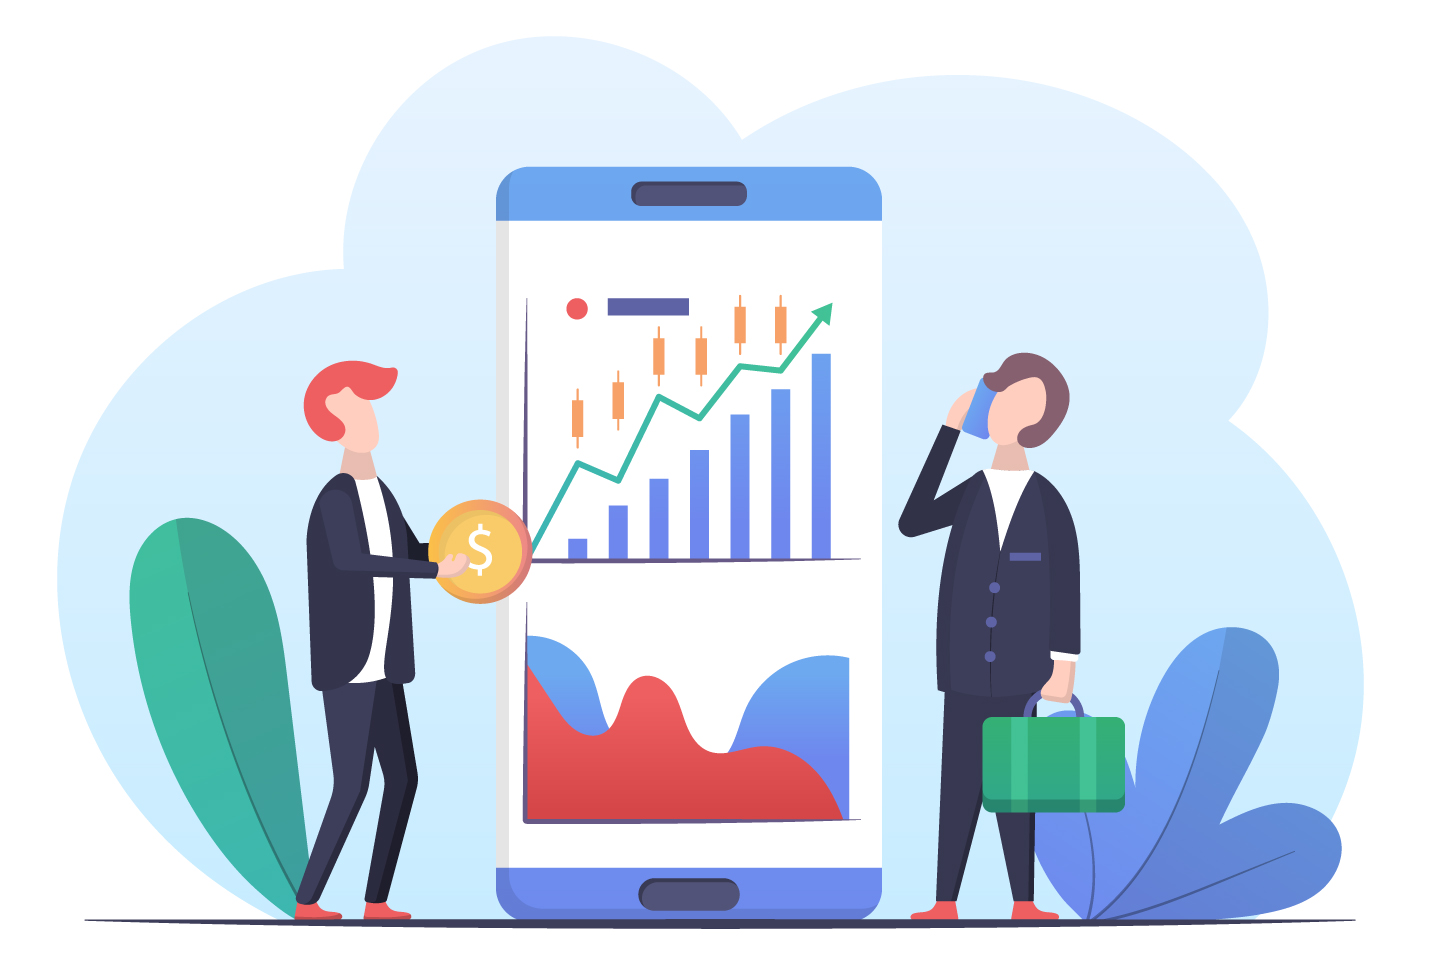 Mobile Stock Trading Concept